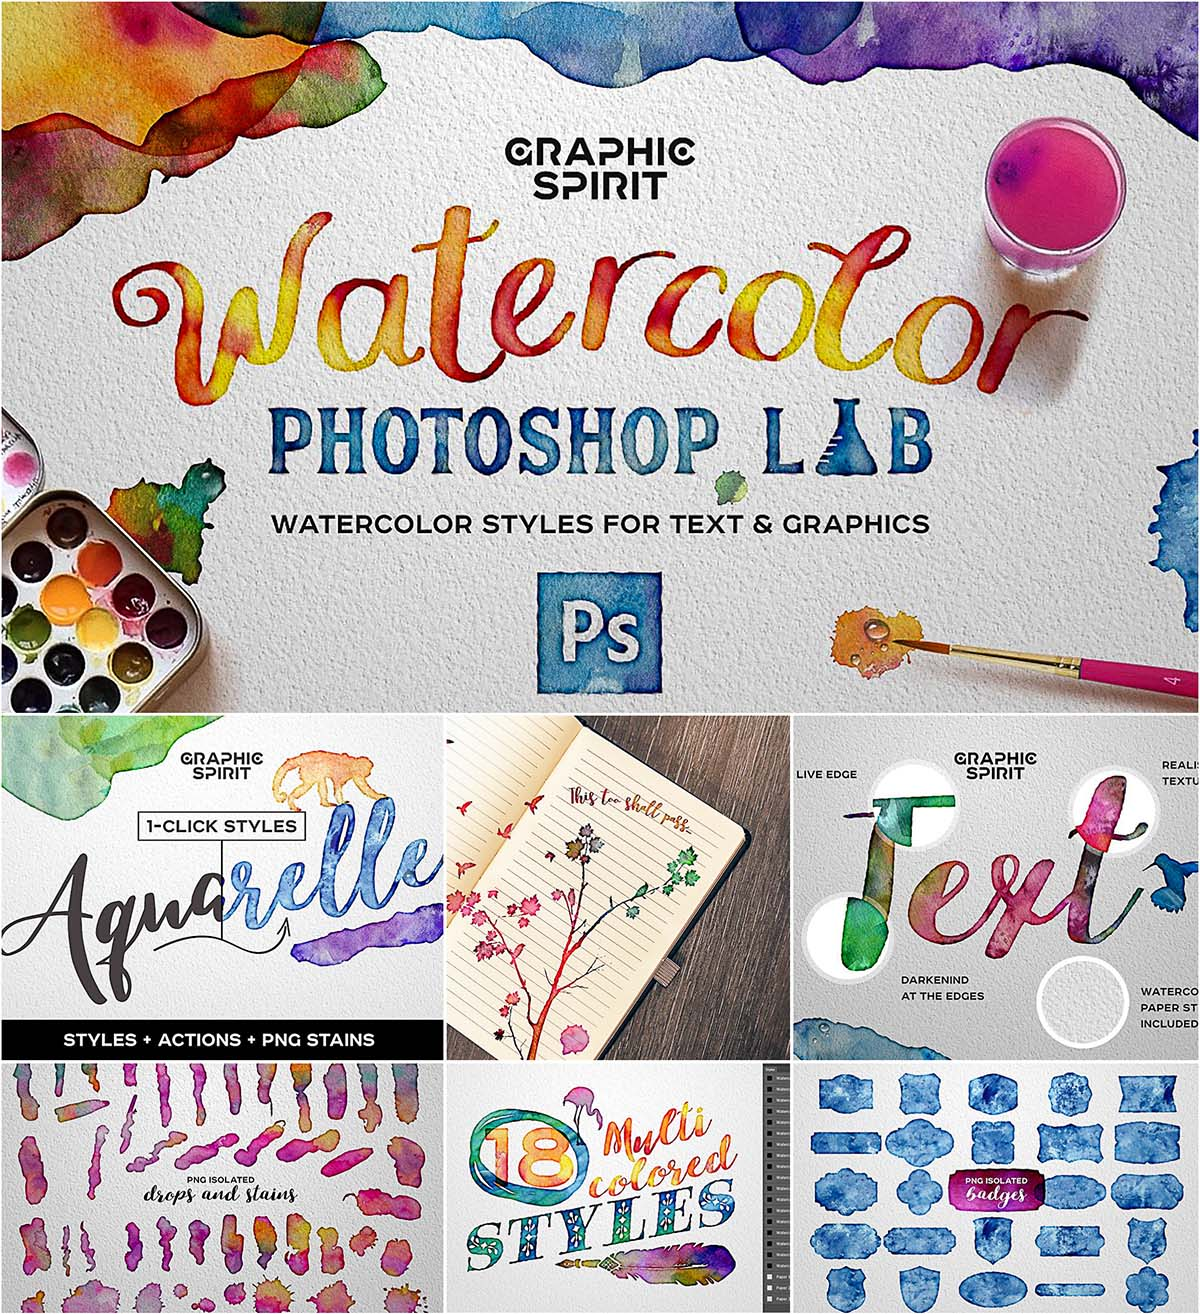 Watercolor effect for photoshop